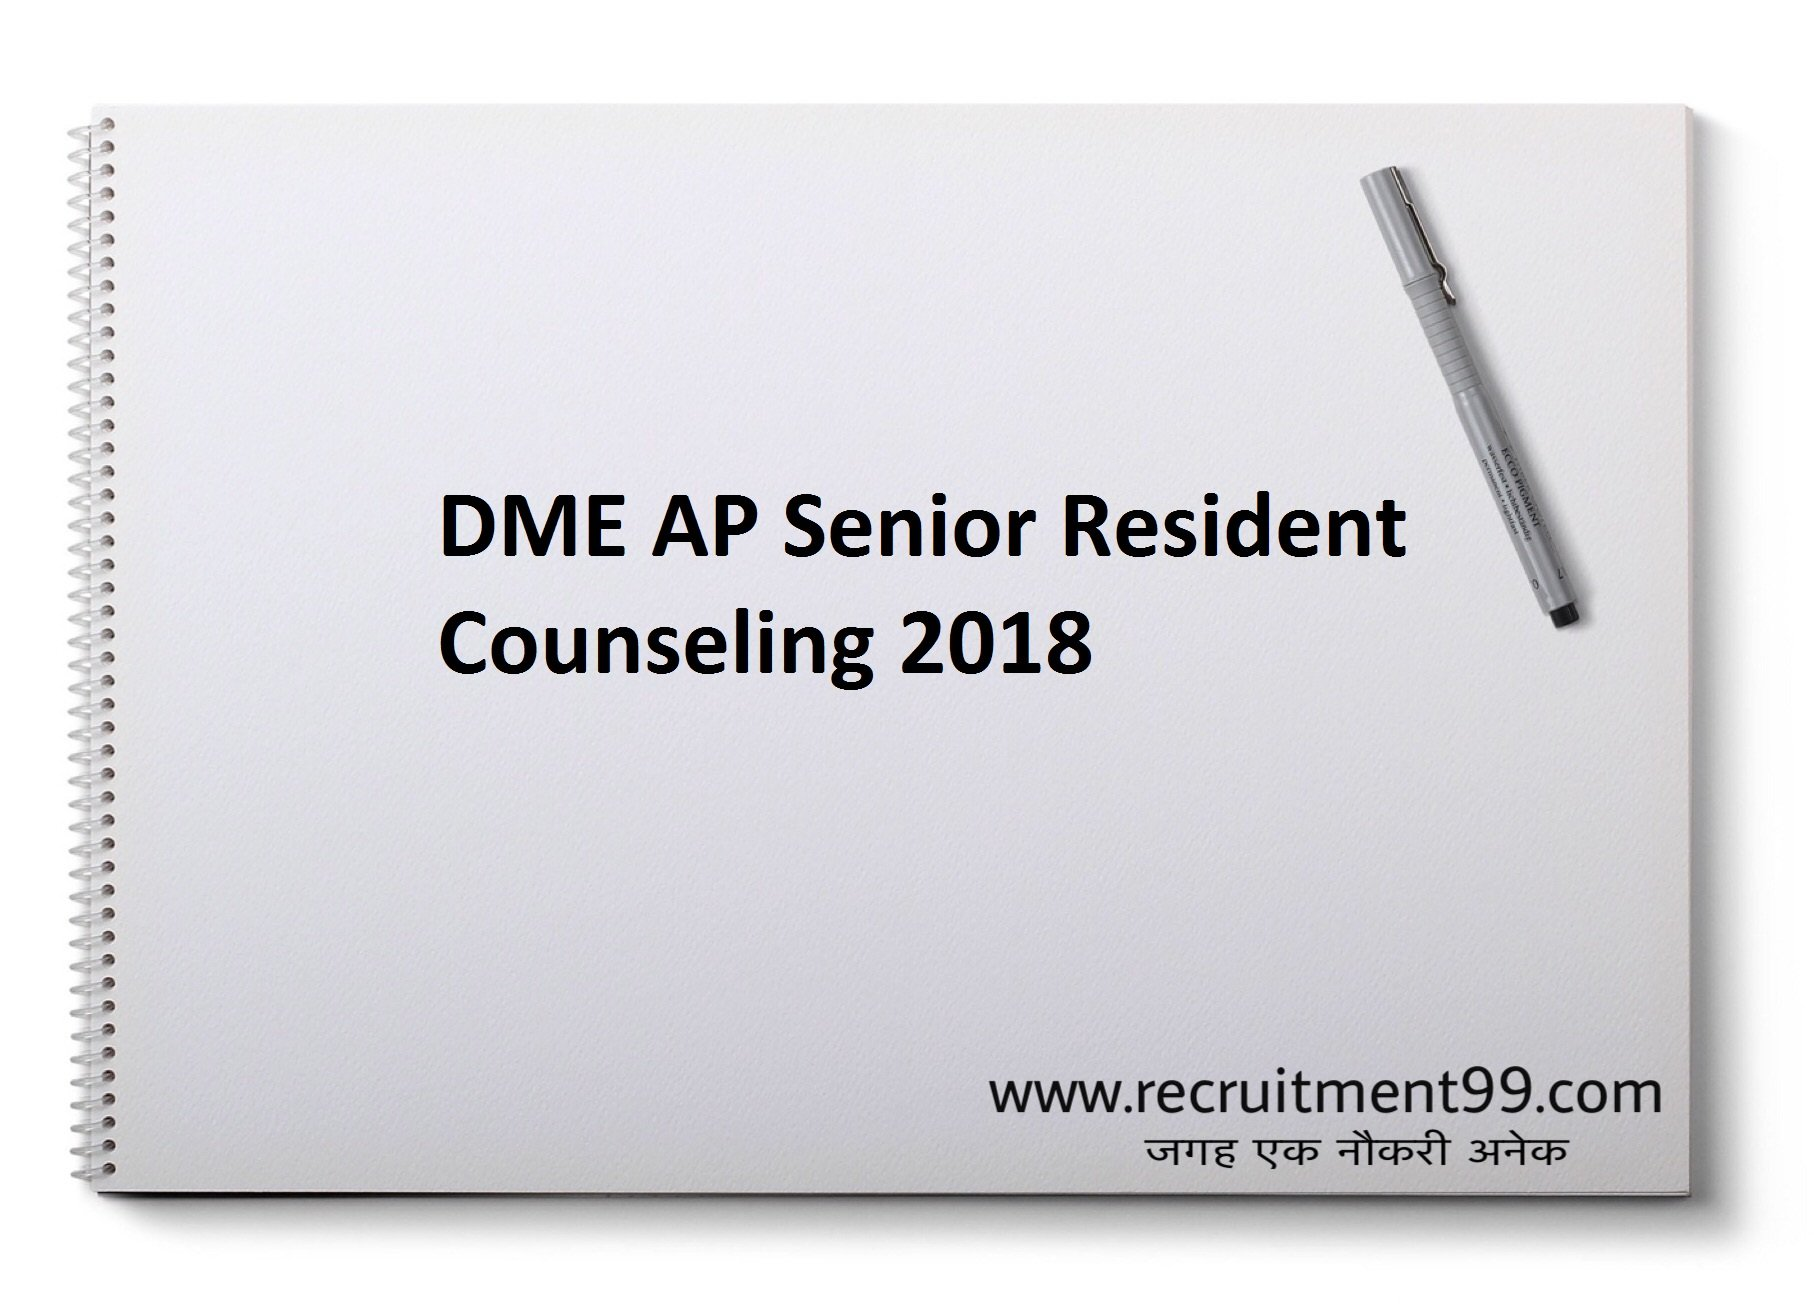 DME AP Senior Resident Recruitment Merit List Result 2018